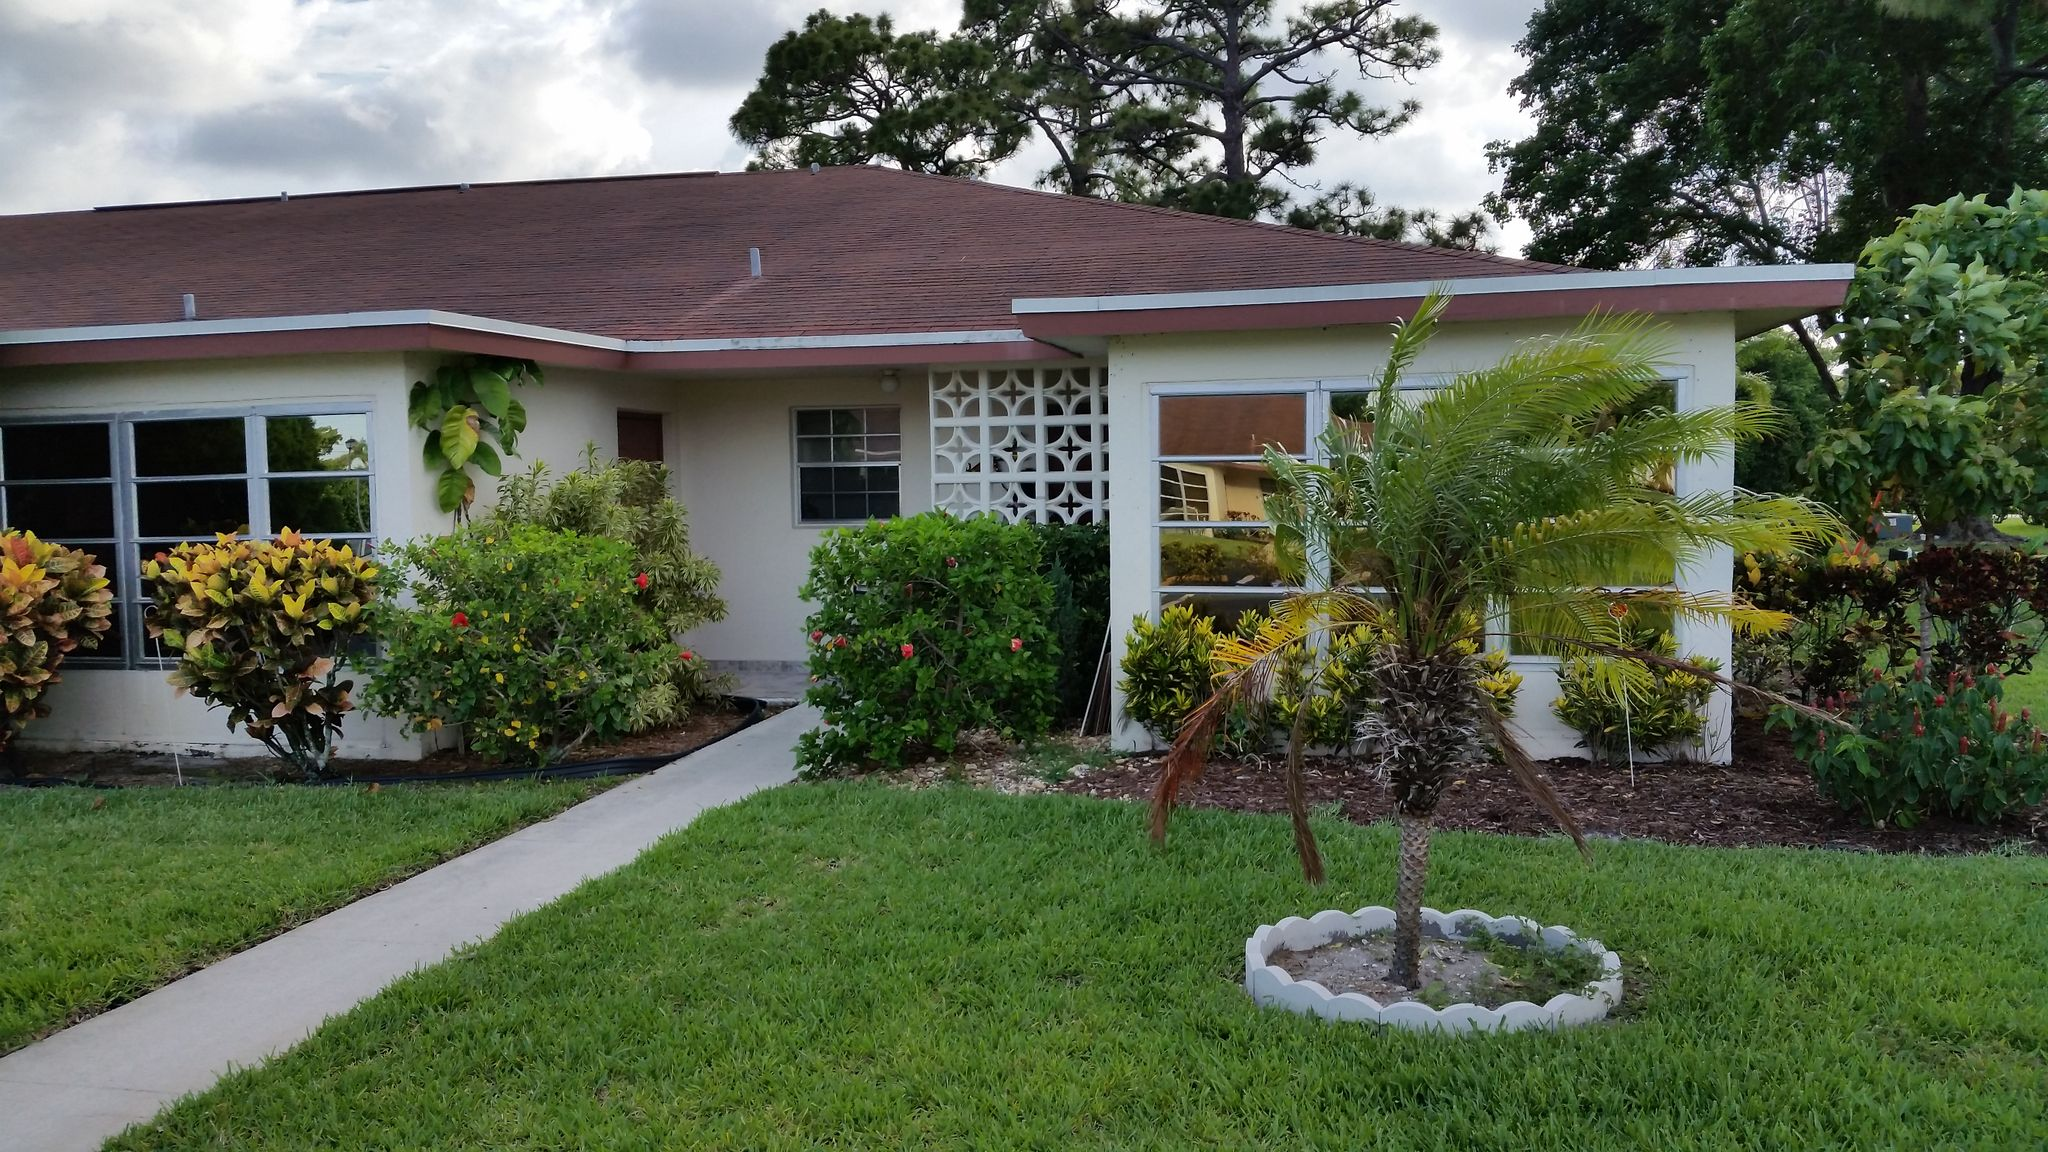 4875 NW 2nd St #D For Sale - Delray Beach, FL | Trulia